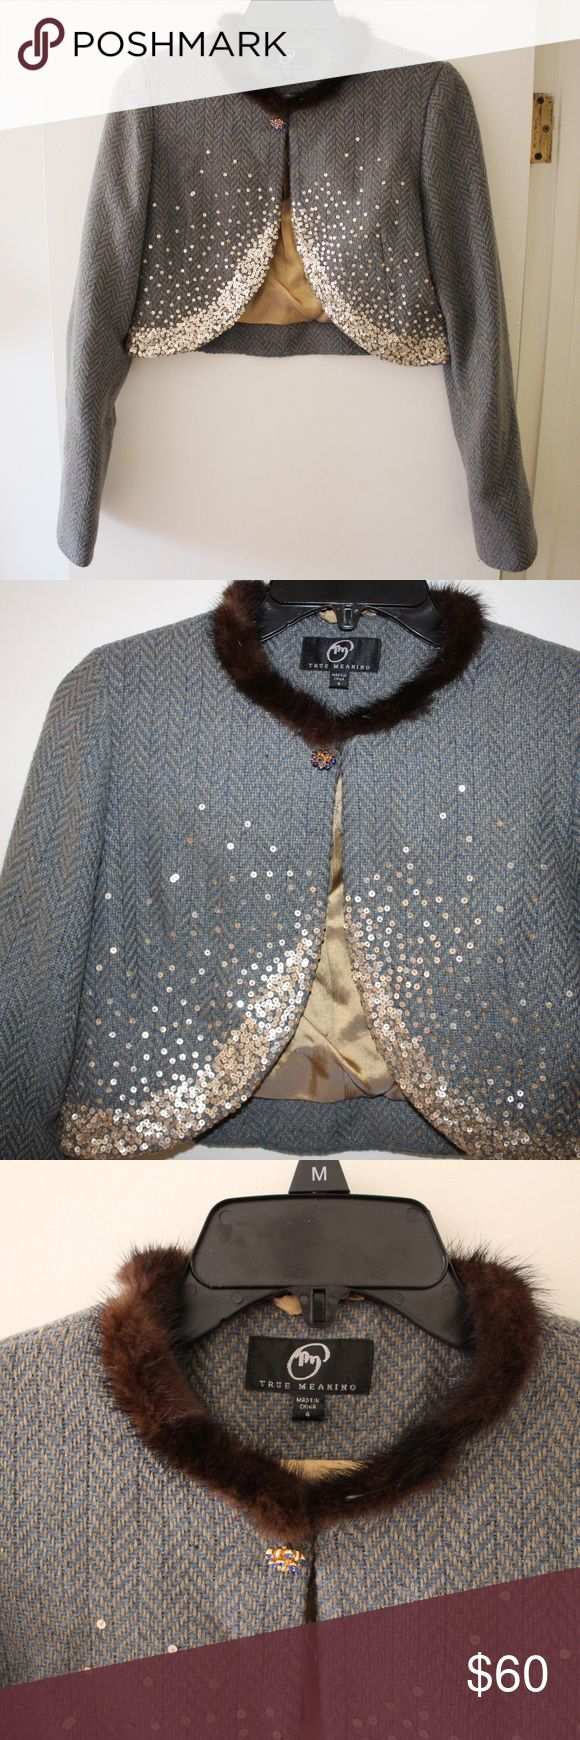 "TRUE MEANING Crop Wool Embellished Jacket Sz 4  S TRUE MEANING Crop Embellished Jacket  Brand new without tag - never used - perfect condition  Poly, wool, acrylic blend.  GORGEOUS!!  Kinda sad to sell this but unfortunately doesn't fit - so enjoy!  Gold sequins and I think the fur around the neck is rabbit..it's super soft and fluffy.  Buttons at the neck with a pretty blue rhinestone broach that is attached to jacket.  Length:  16"" Shoulder to wrist:  24"" True Meaning Jackets & Coats"